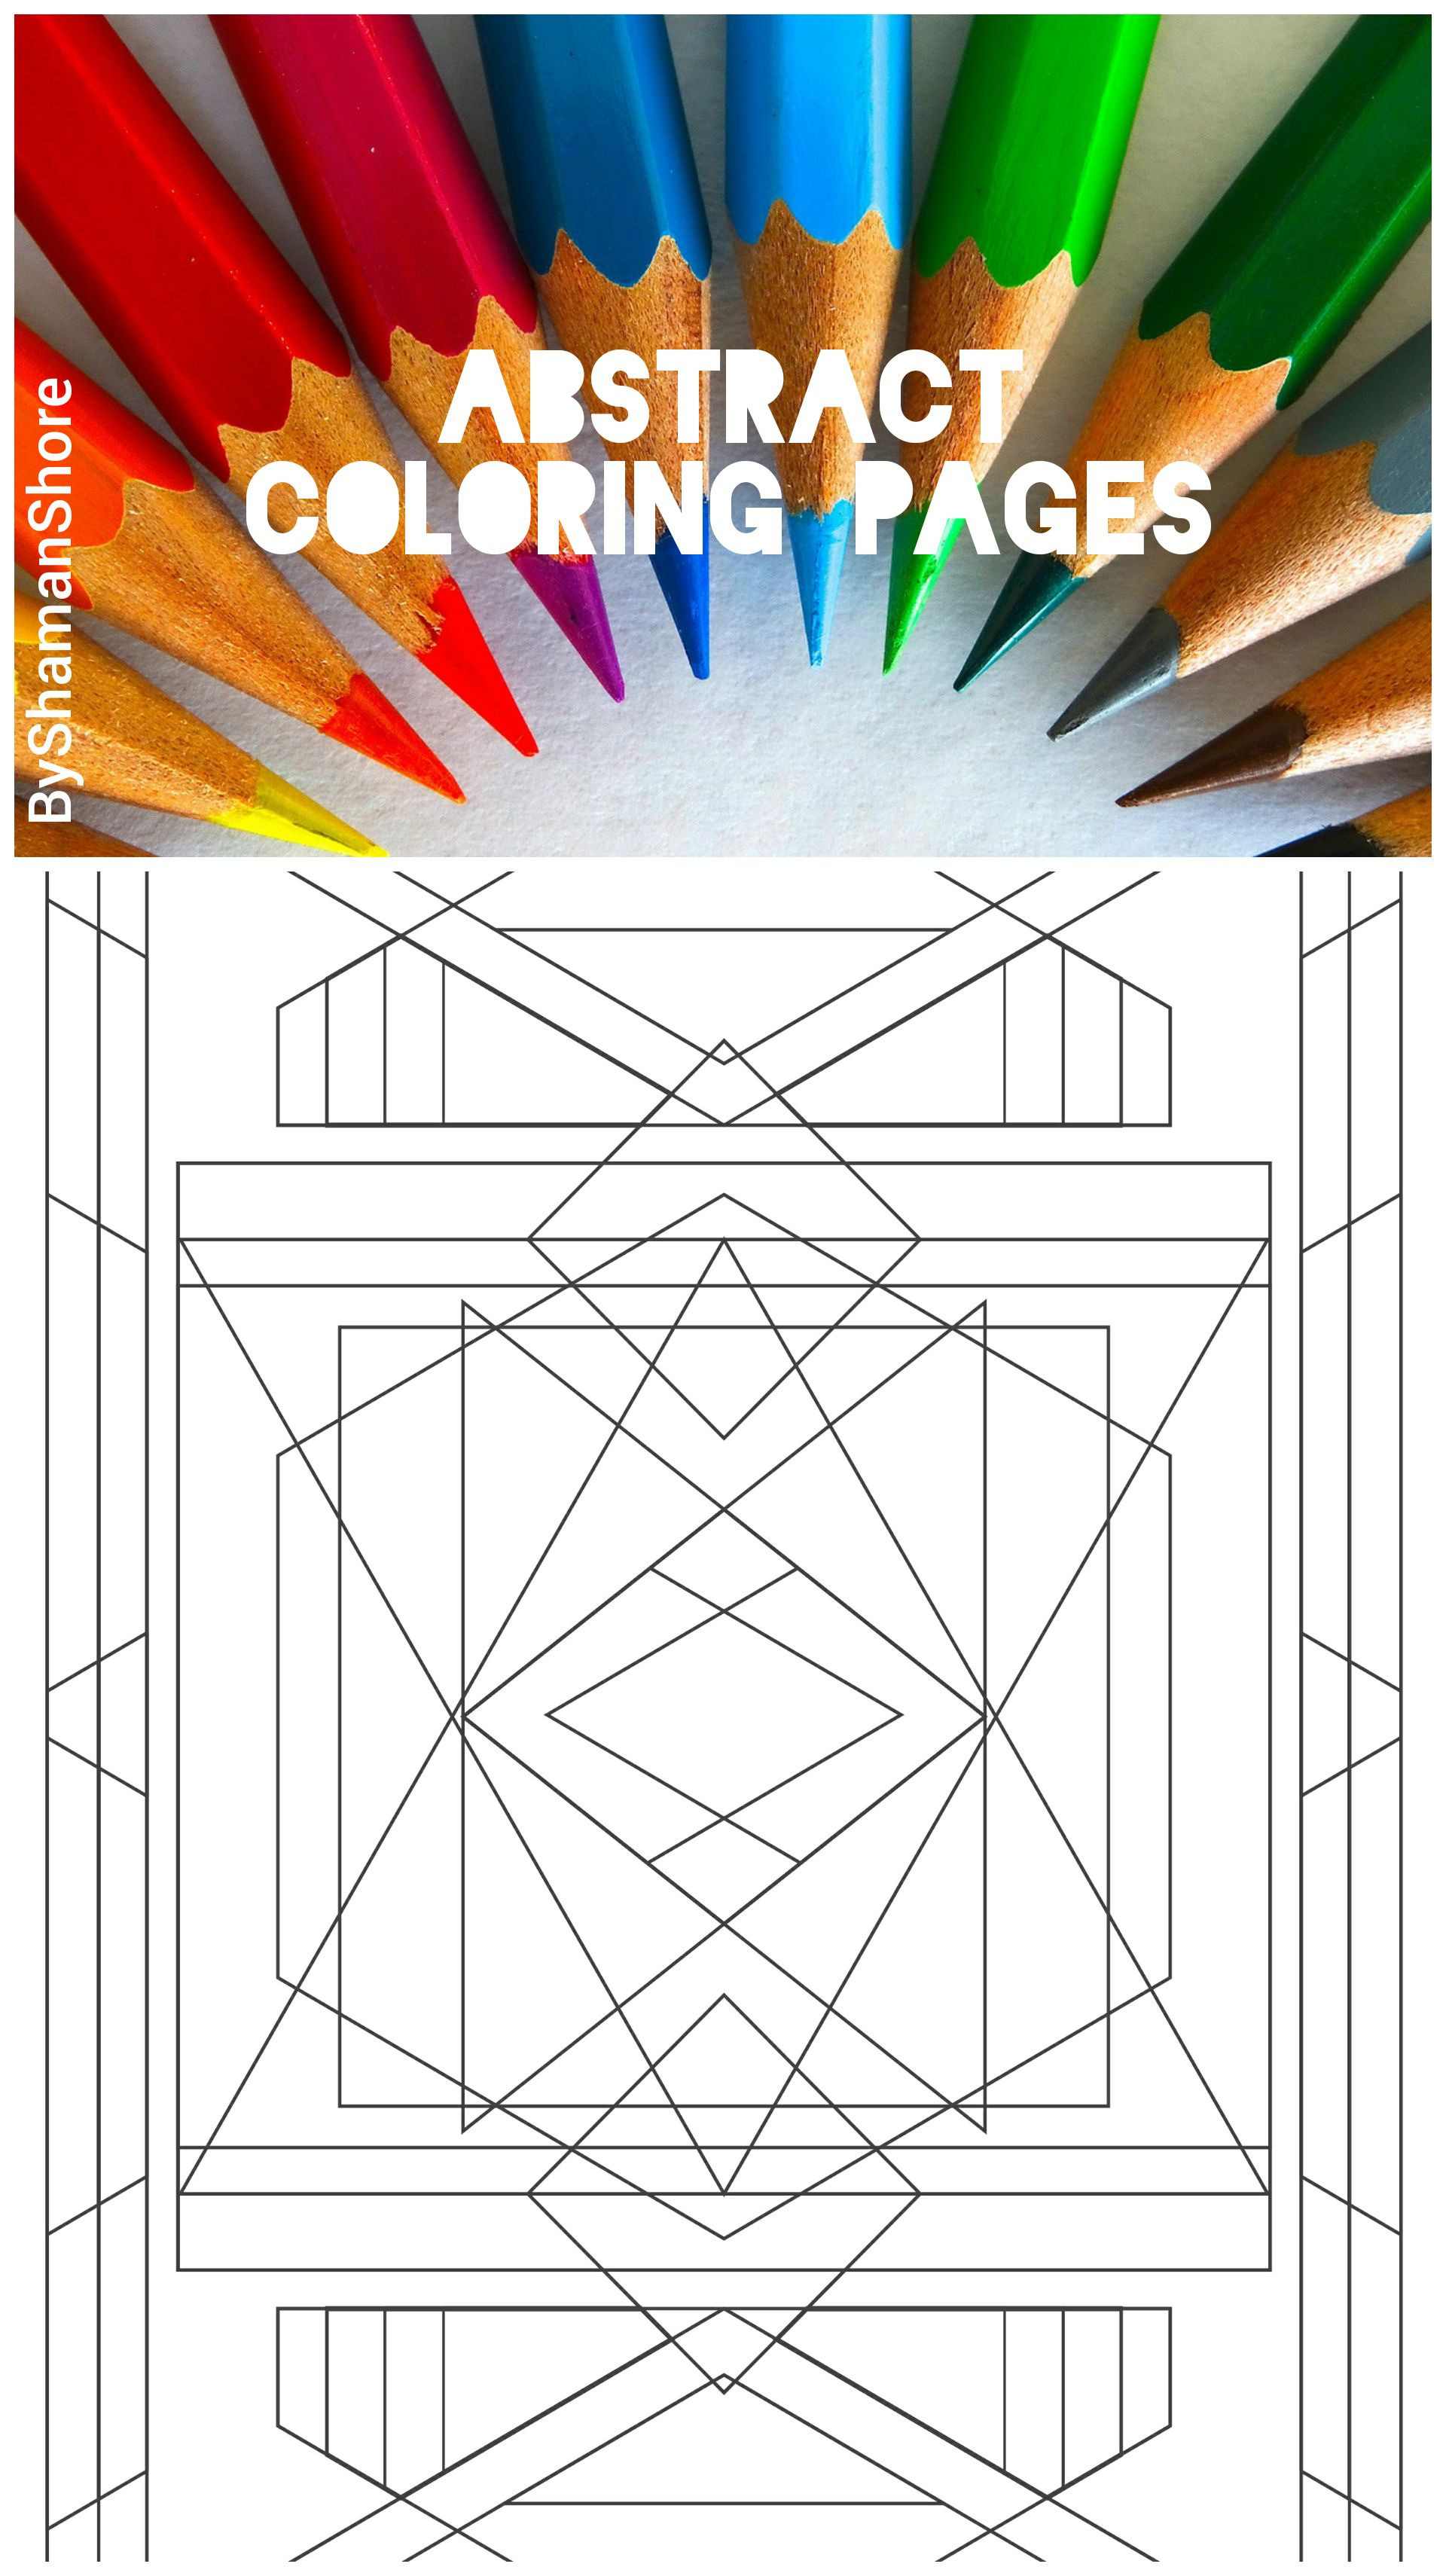 Abstract Coloring Pages For Grown Ups Printable Adult